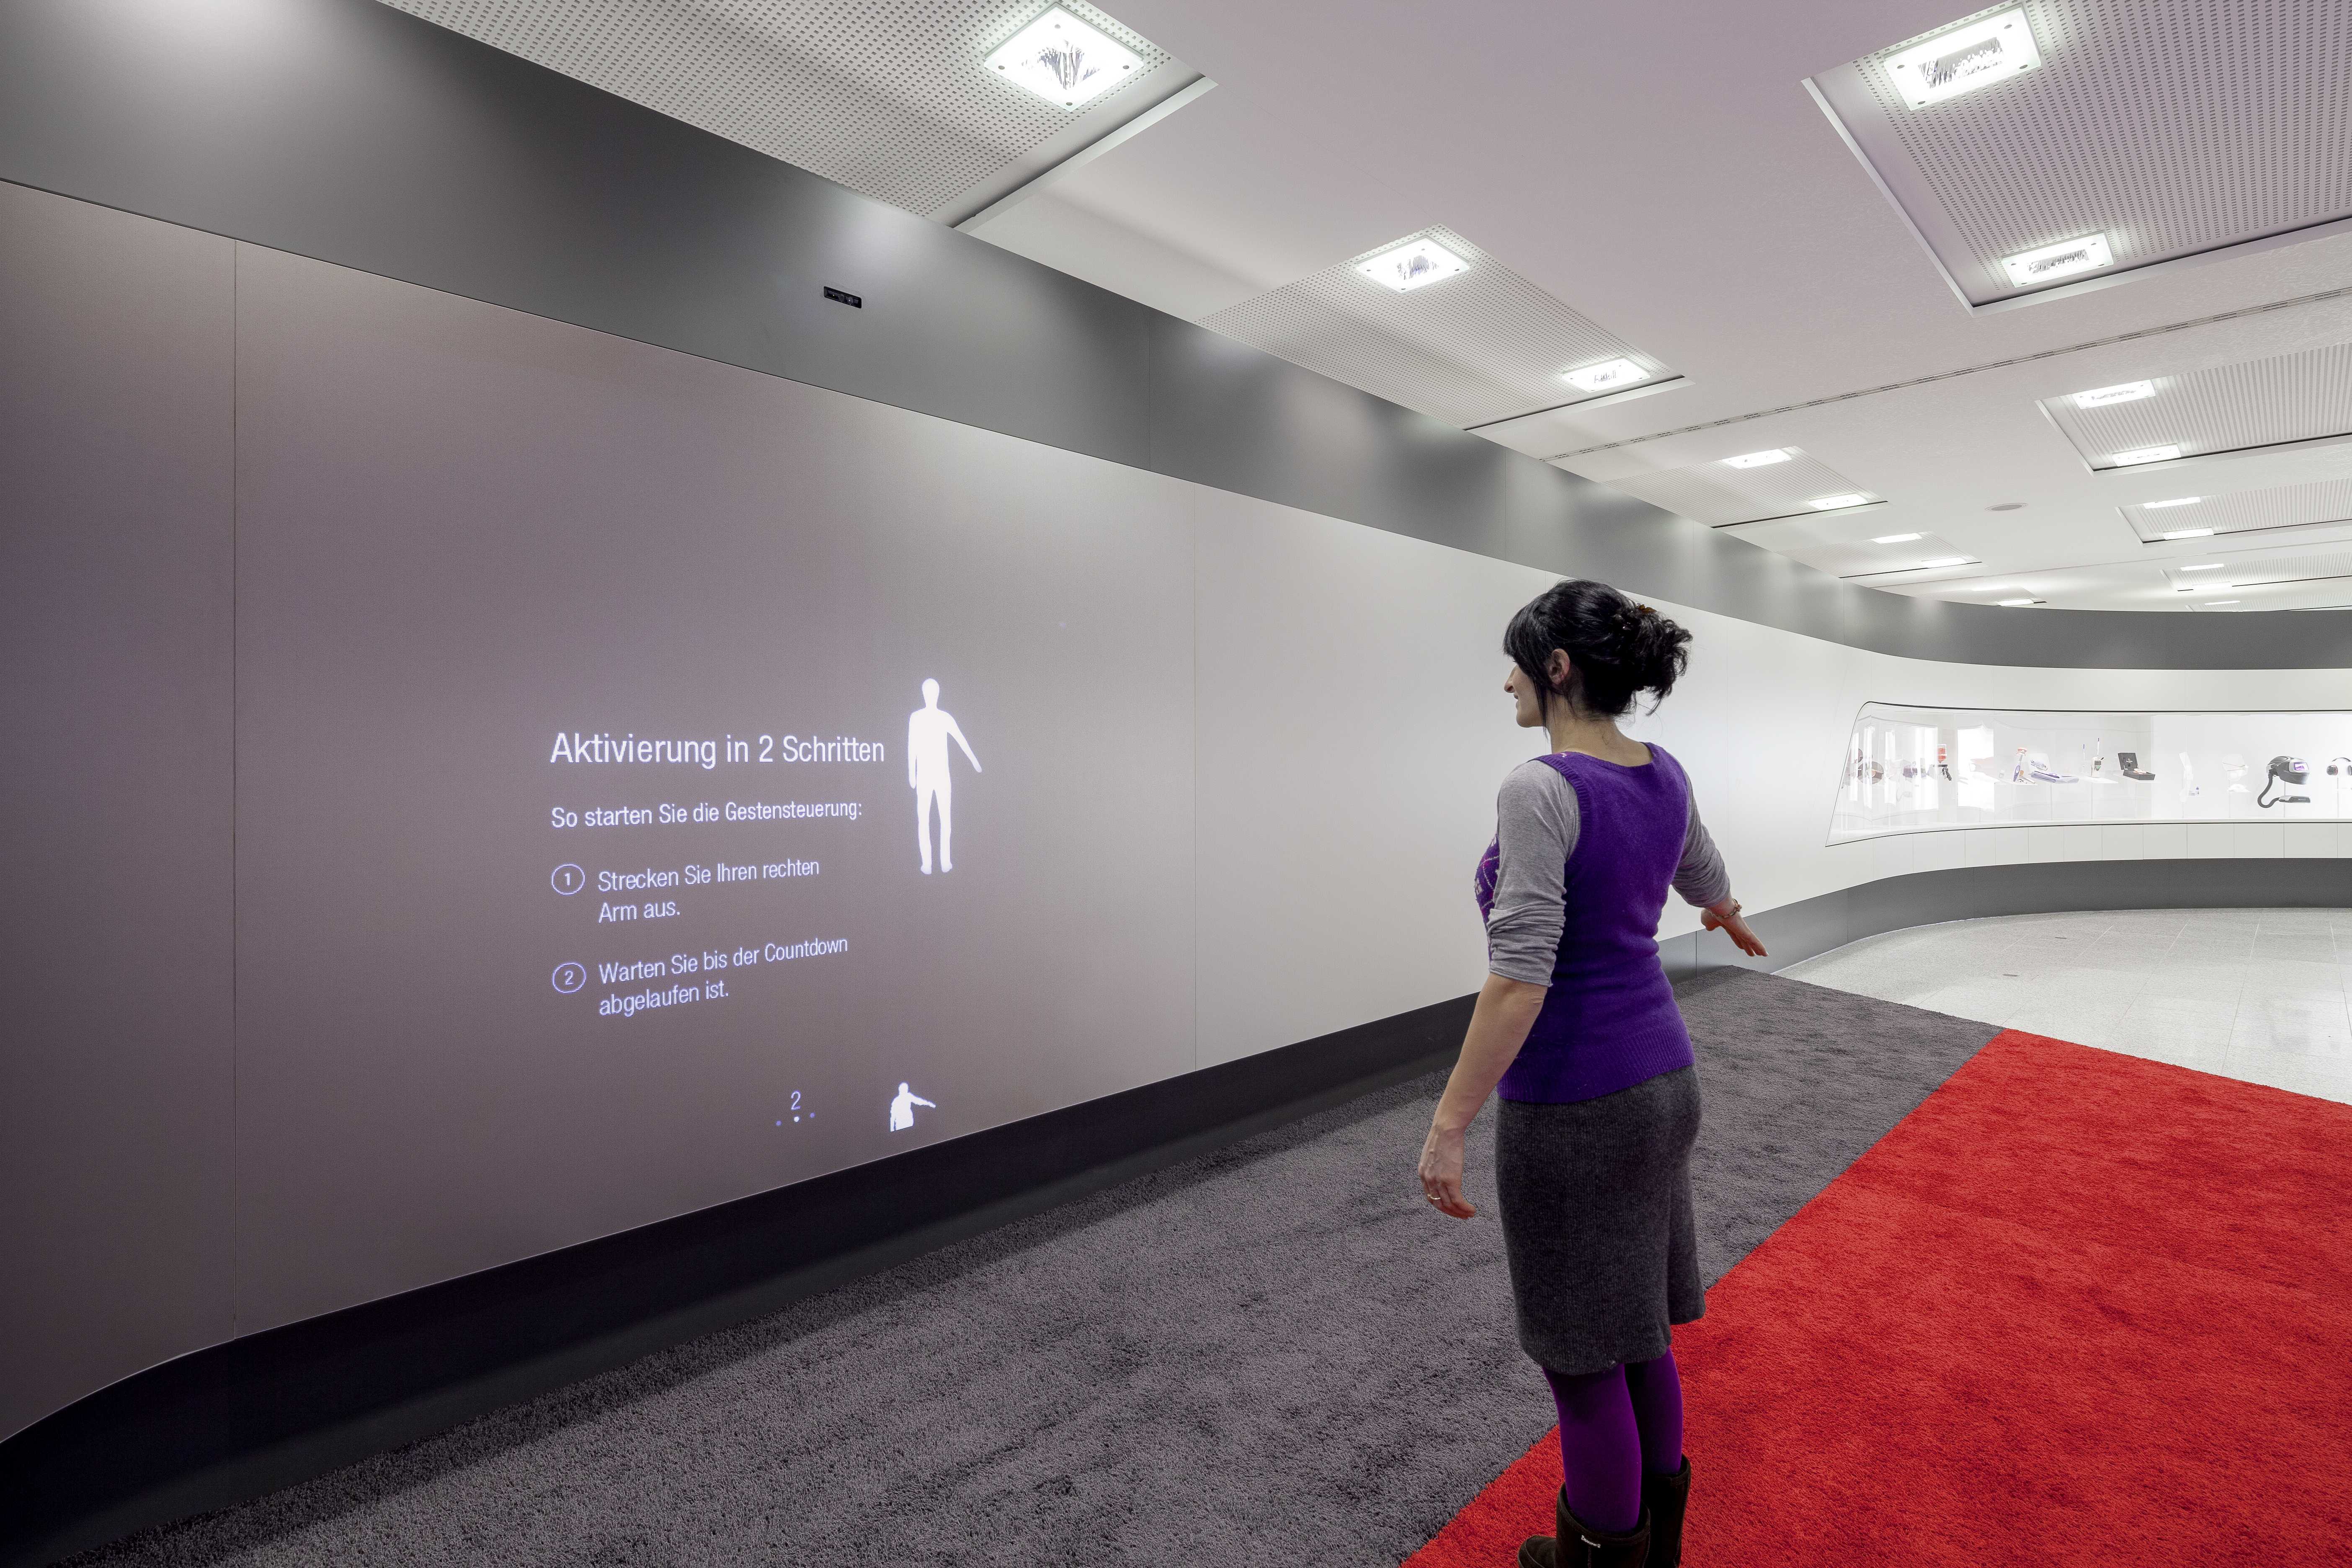 photo 3M World of Innovation boarding waiting area canvas woman operated canvas via gesture control arm